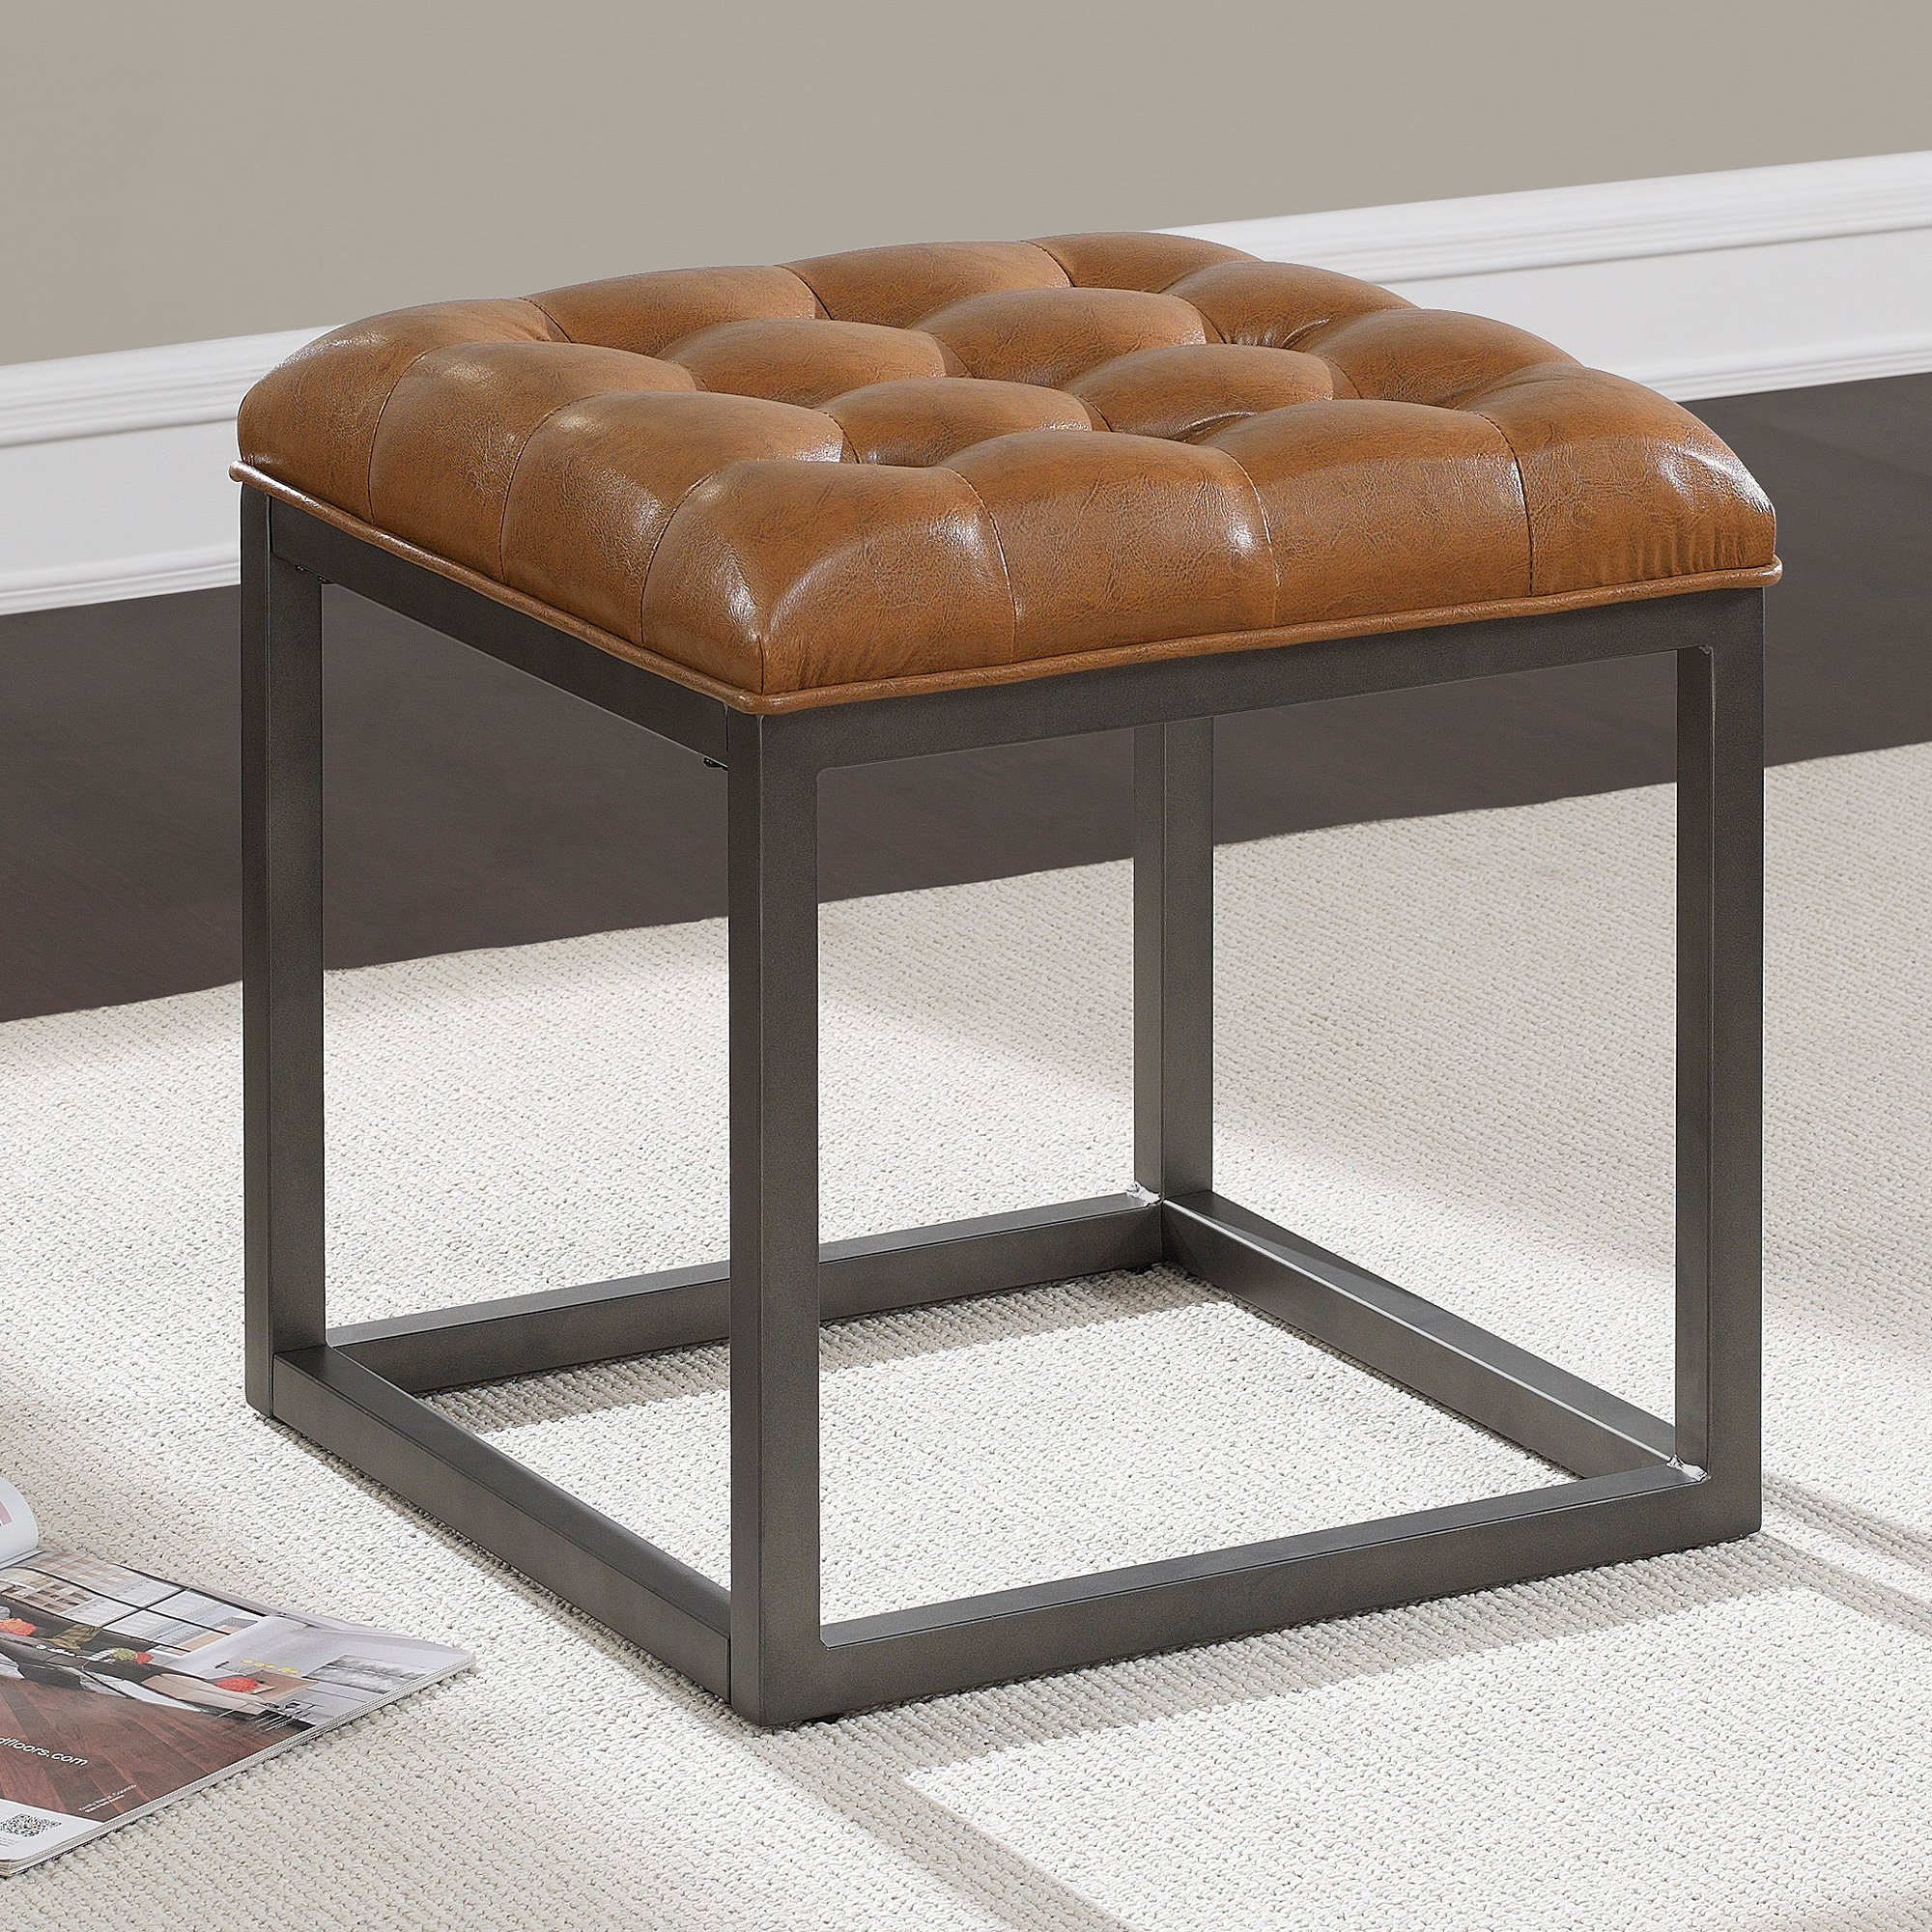 Ottoman in Saddle Brown Contemporary, Transitional Mini Square Ottoman - 18 in High x 18 in Wide x 18 in Deep